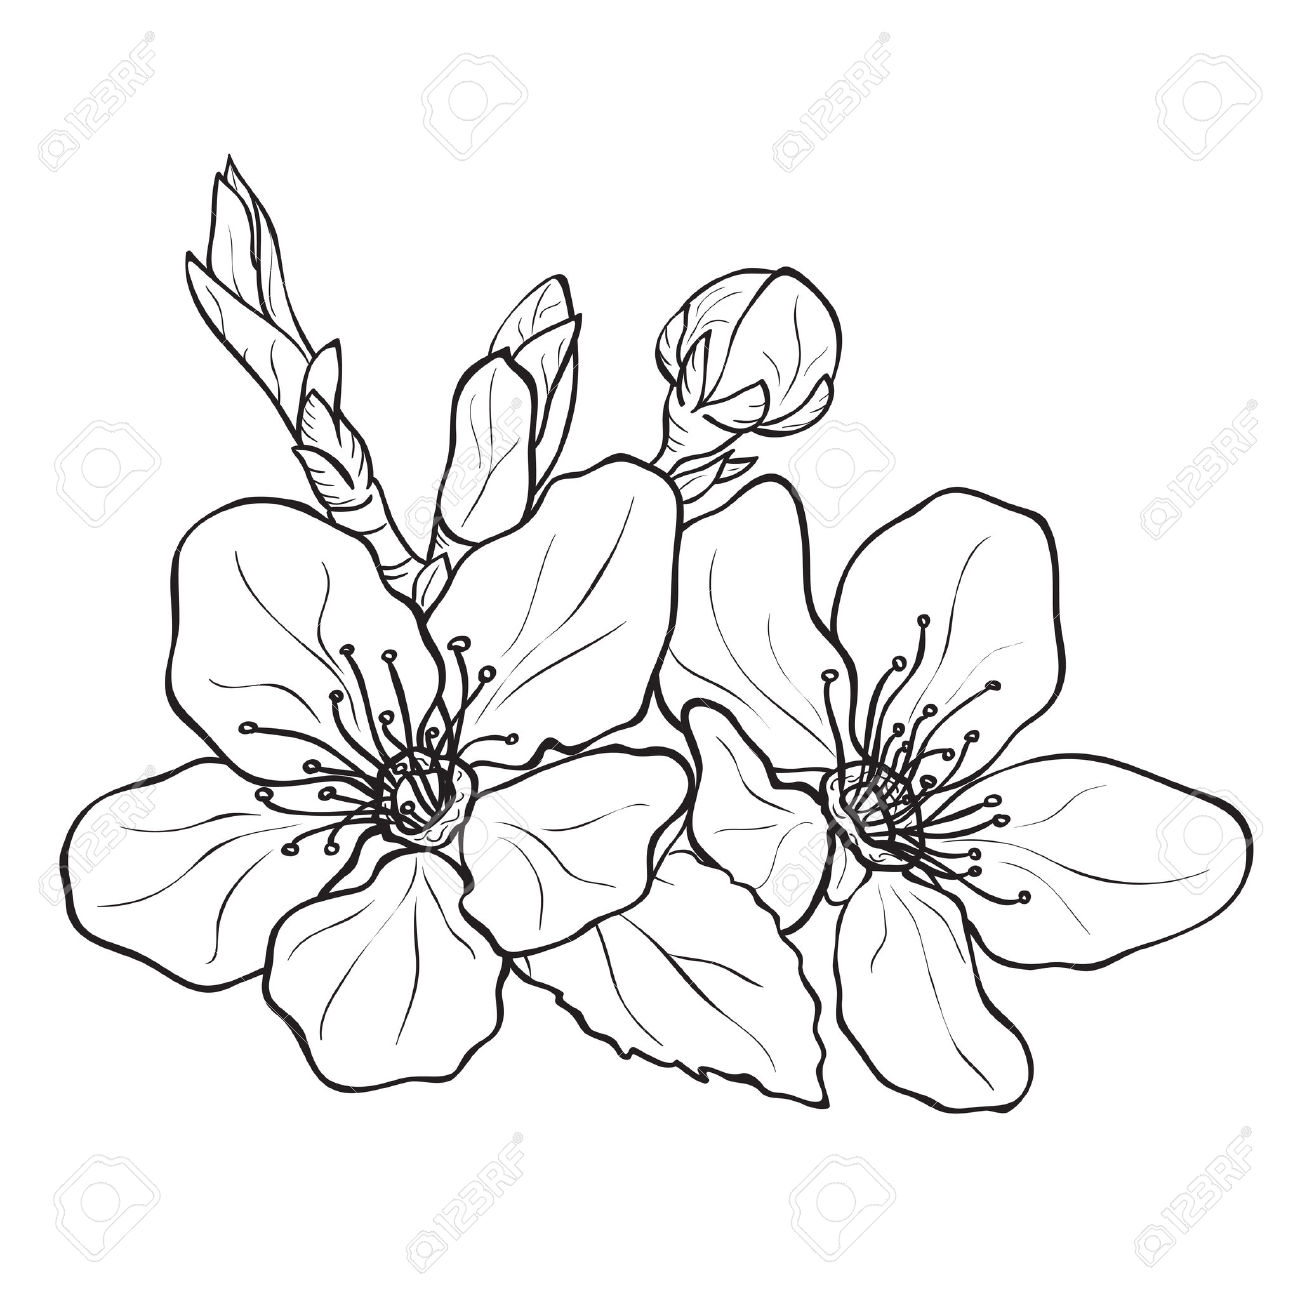 The Best Free Flor Drawing Images Download From 33 Free Drawings Of